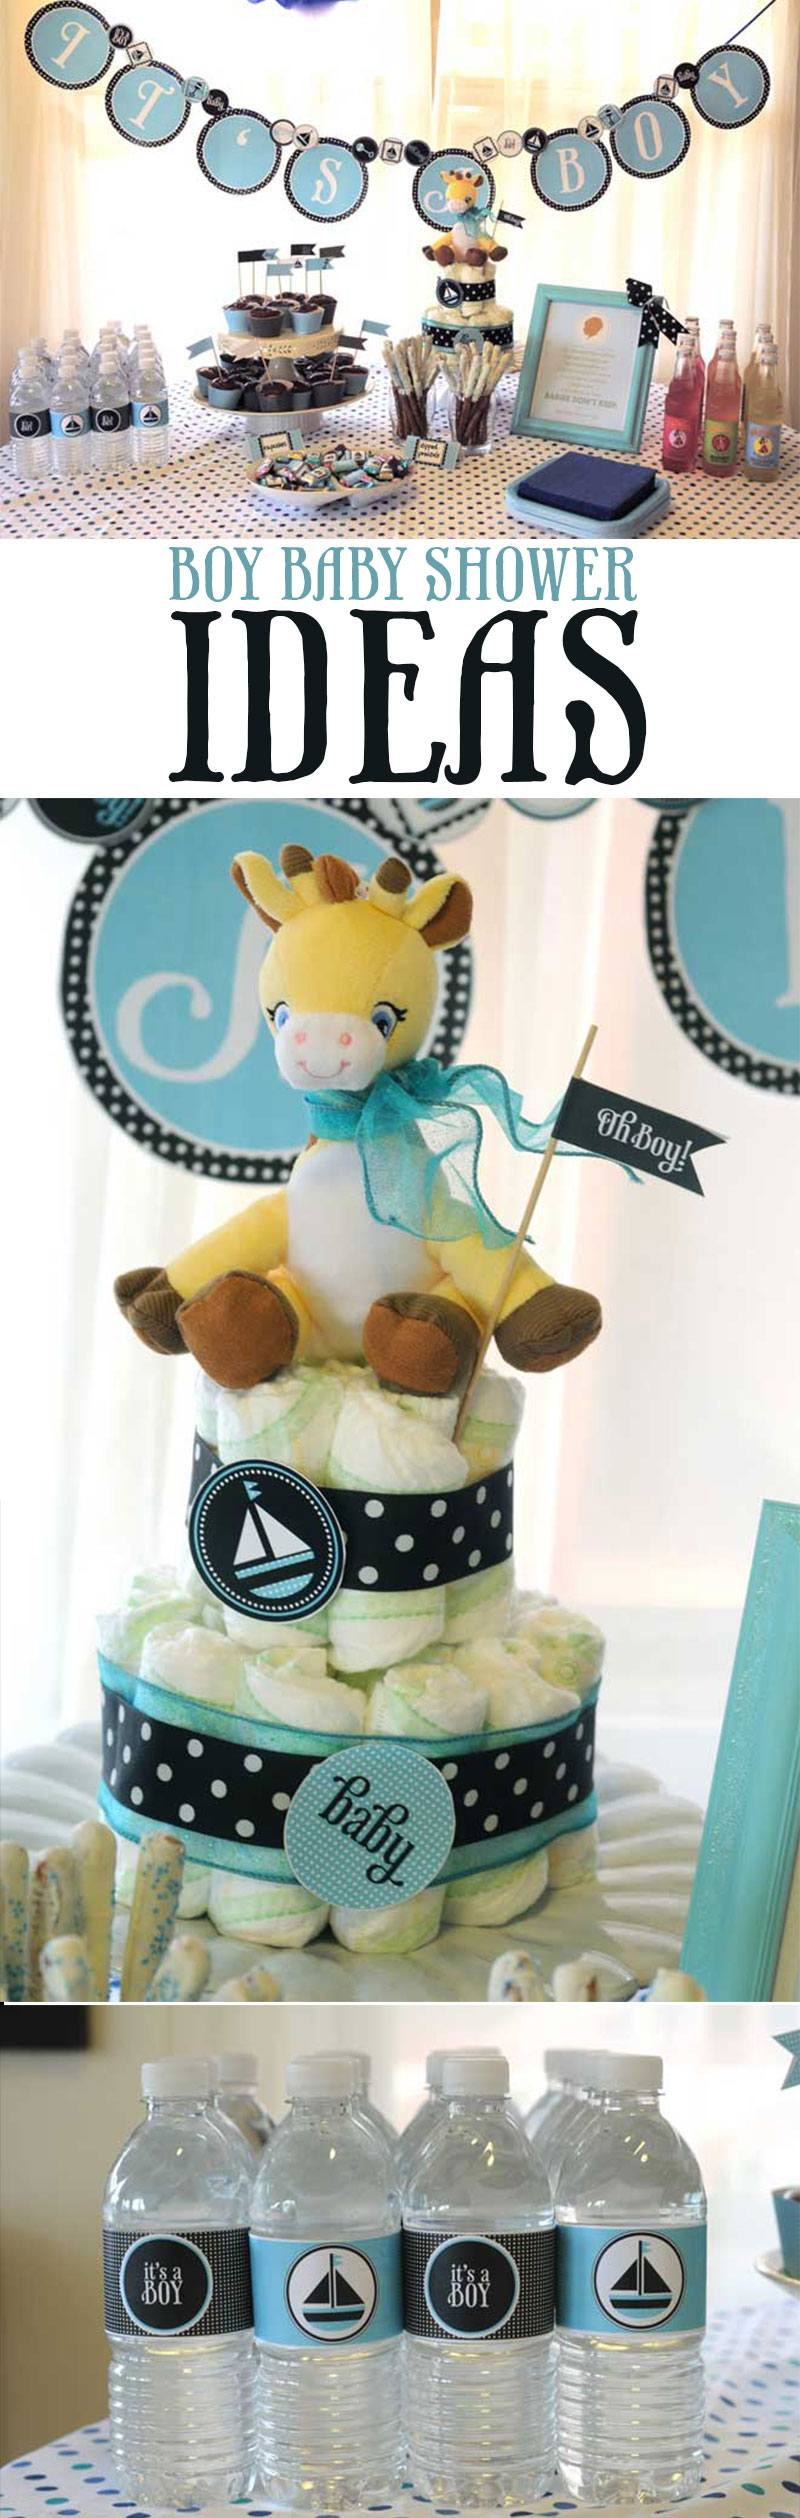 Boy Baby Shower Ideas on Love The Day